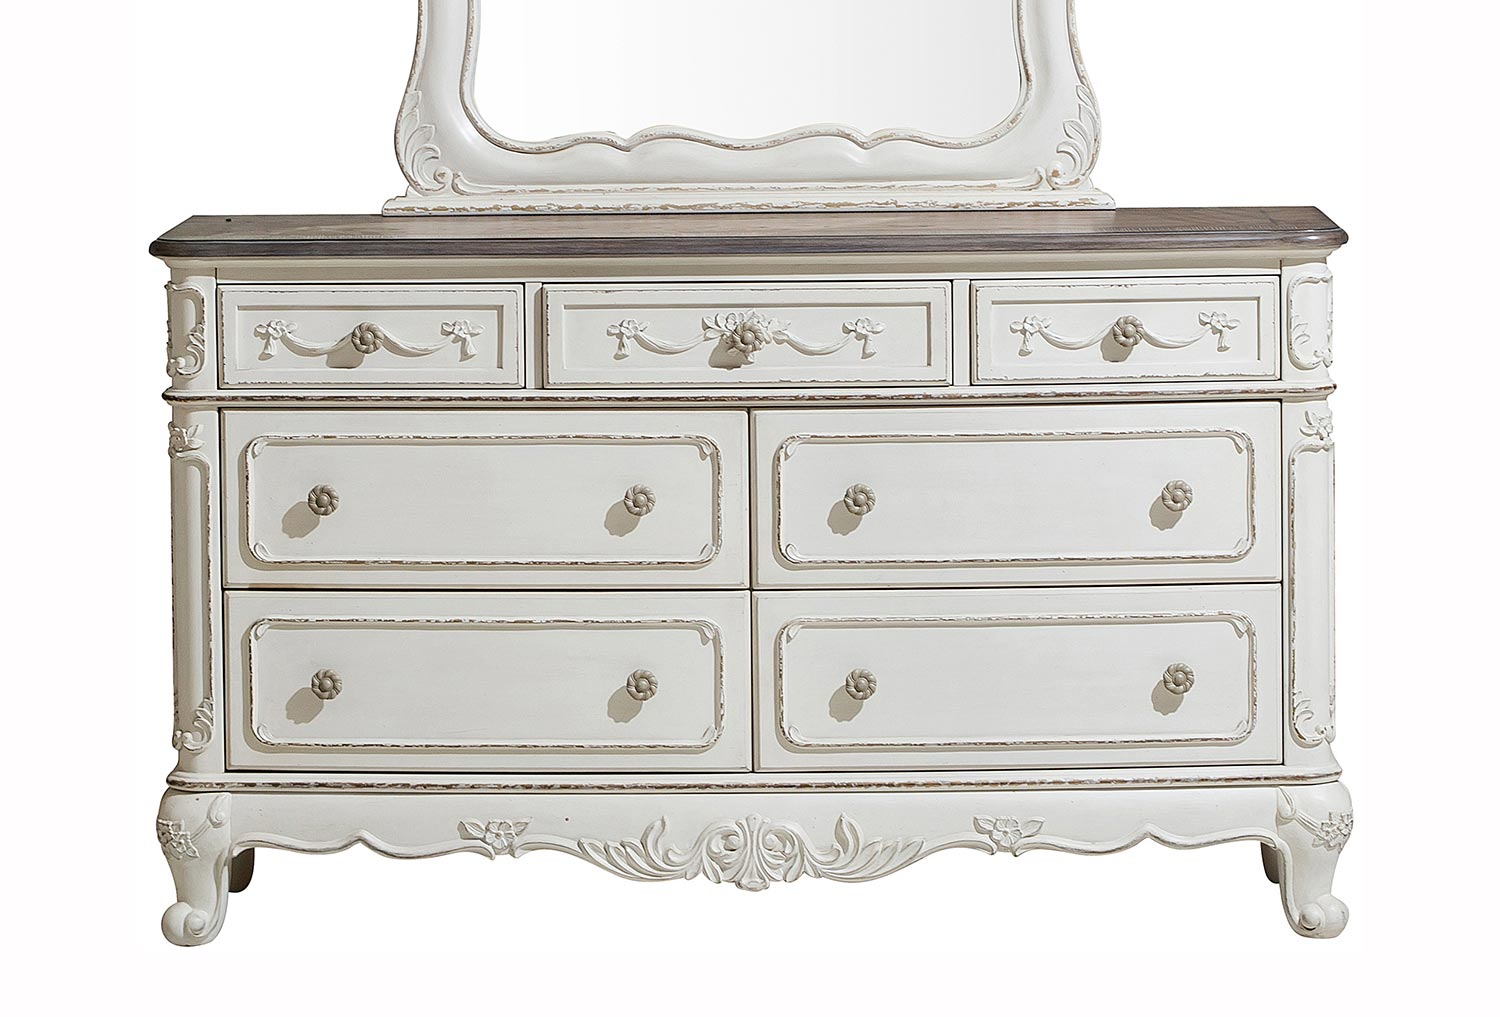 Homelegance Cinderella Dresser - Antique White with Gray Rub-Through